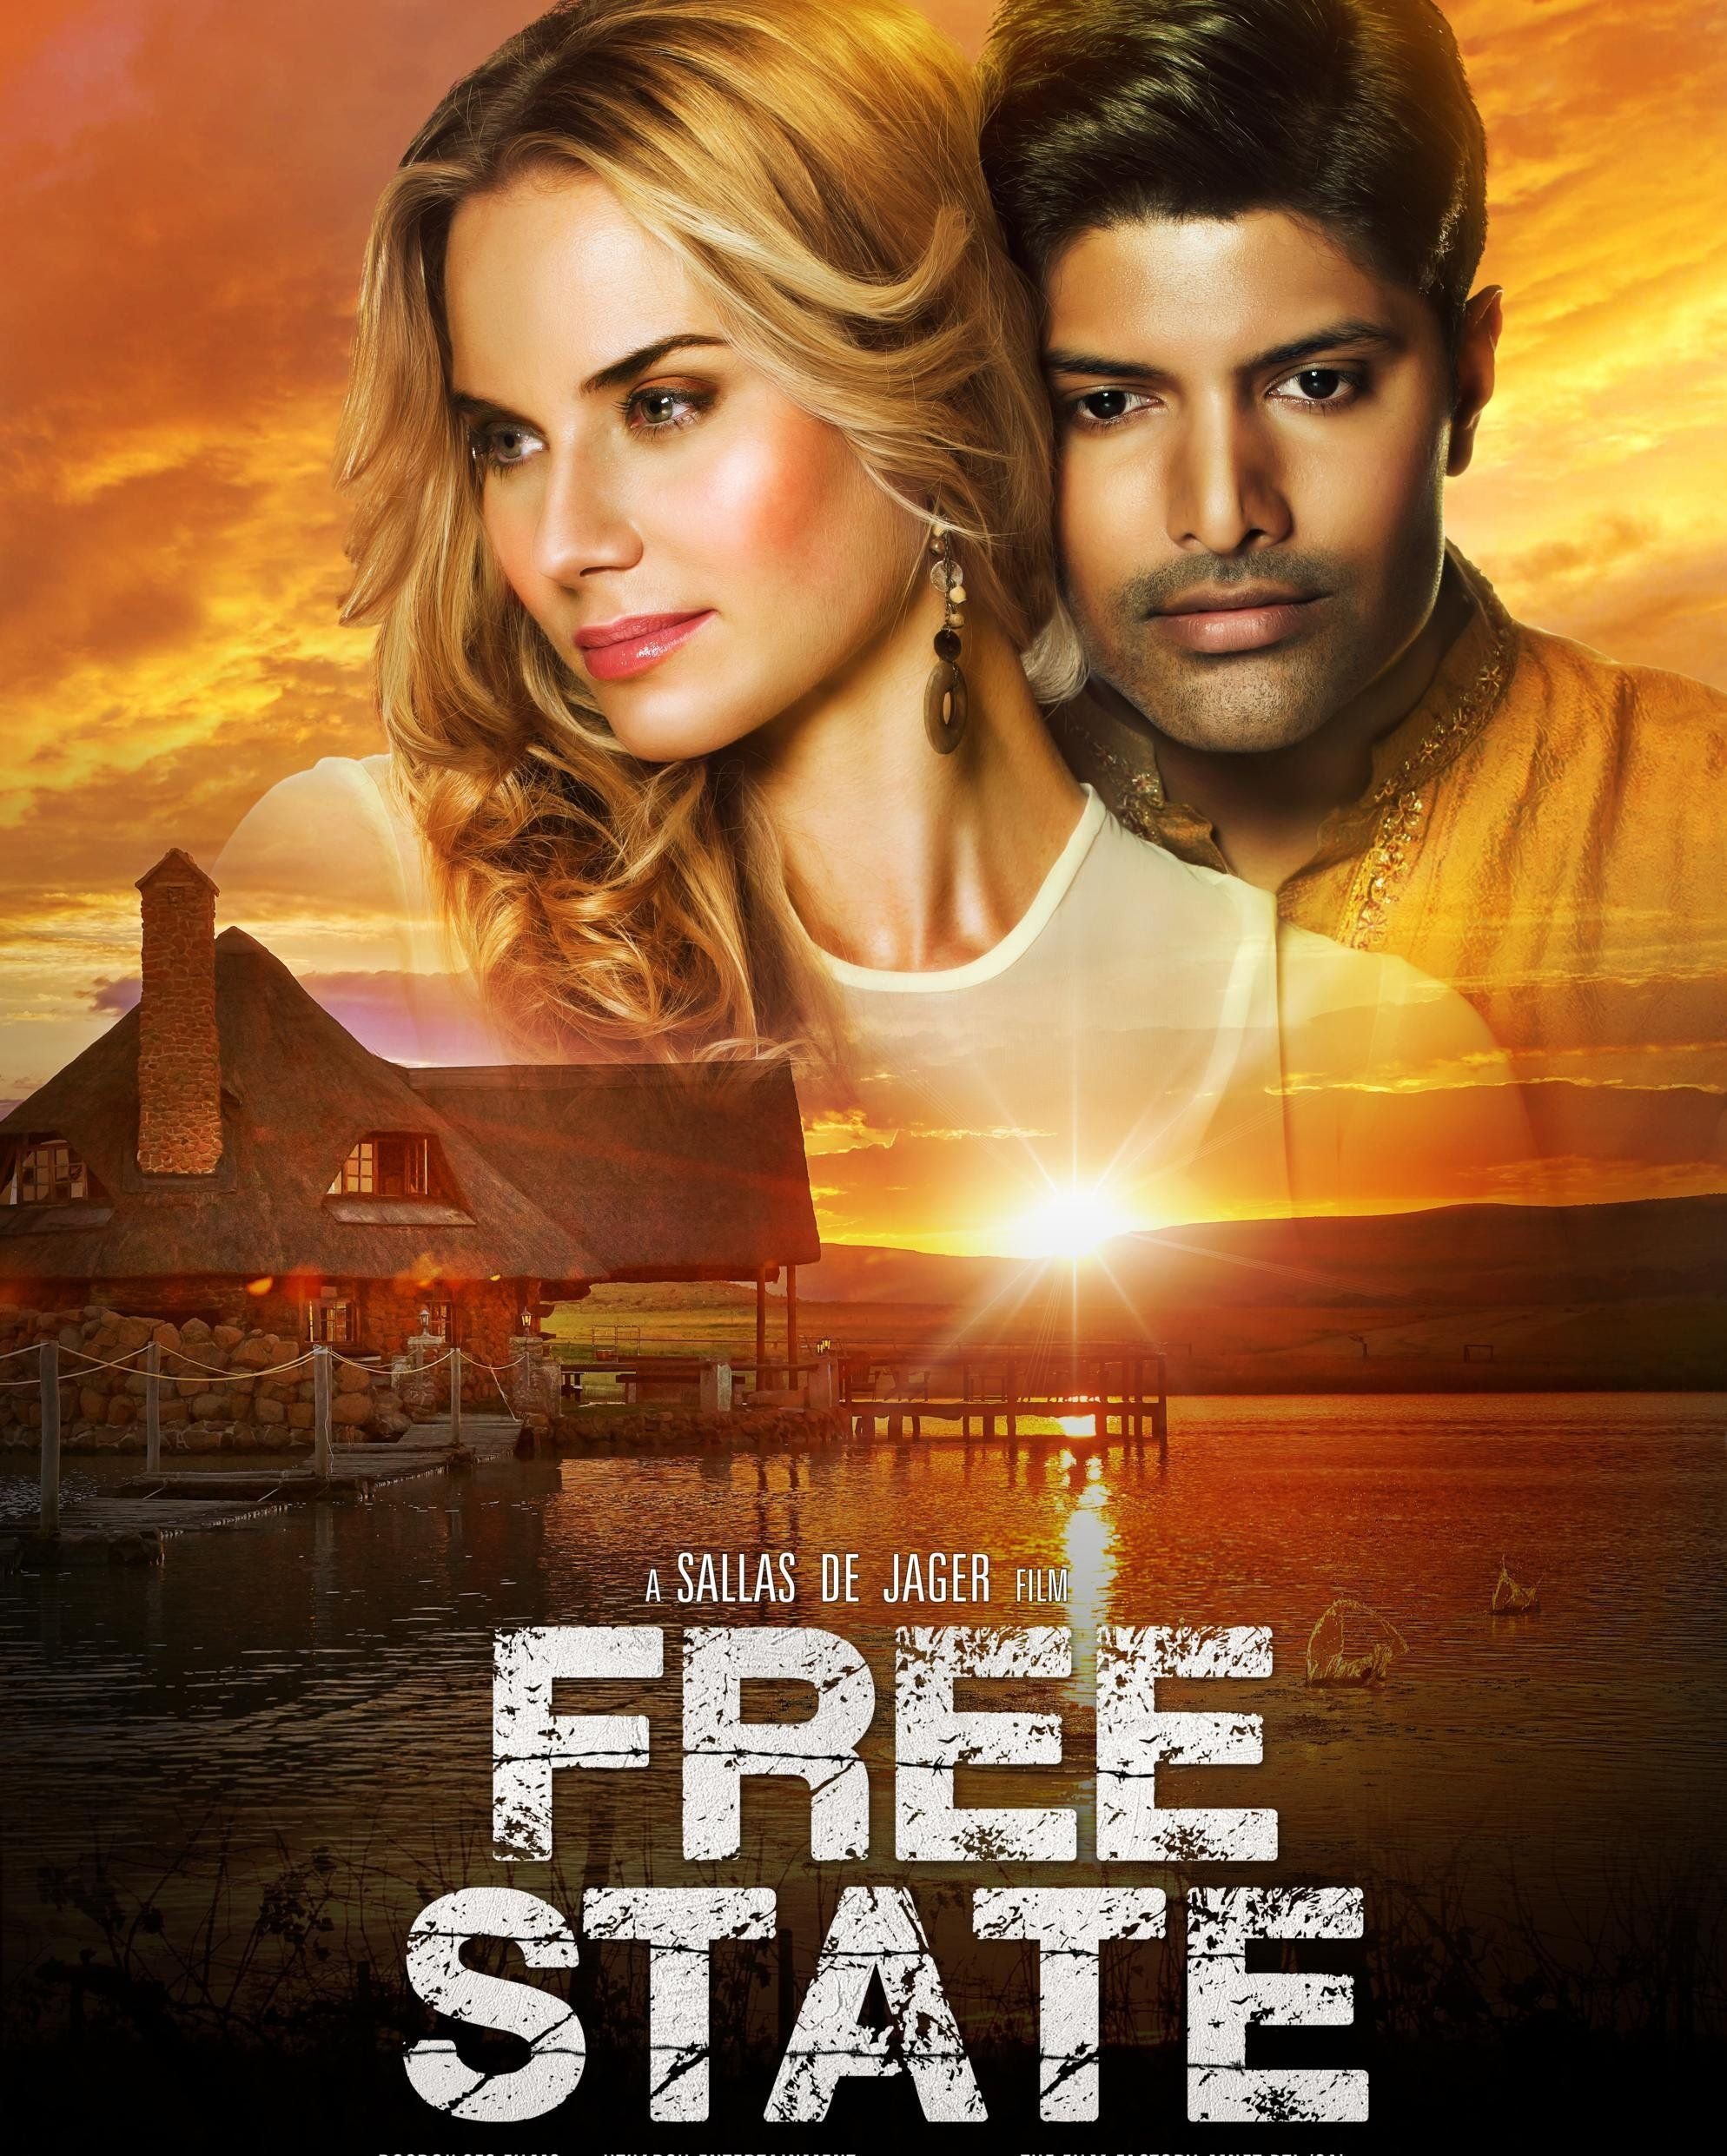 Free State Is An 2016 Drama Romance Movie Watch The Youtube Movie Trailer On Quintessafrica Com Https Www Quintes Free State African Movies Free Movies